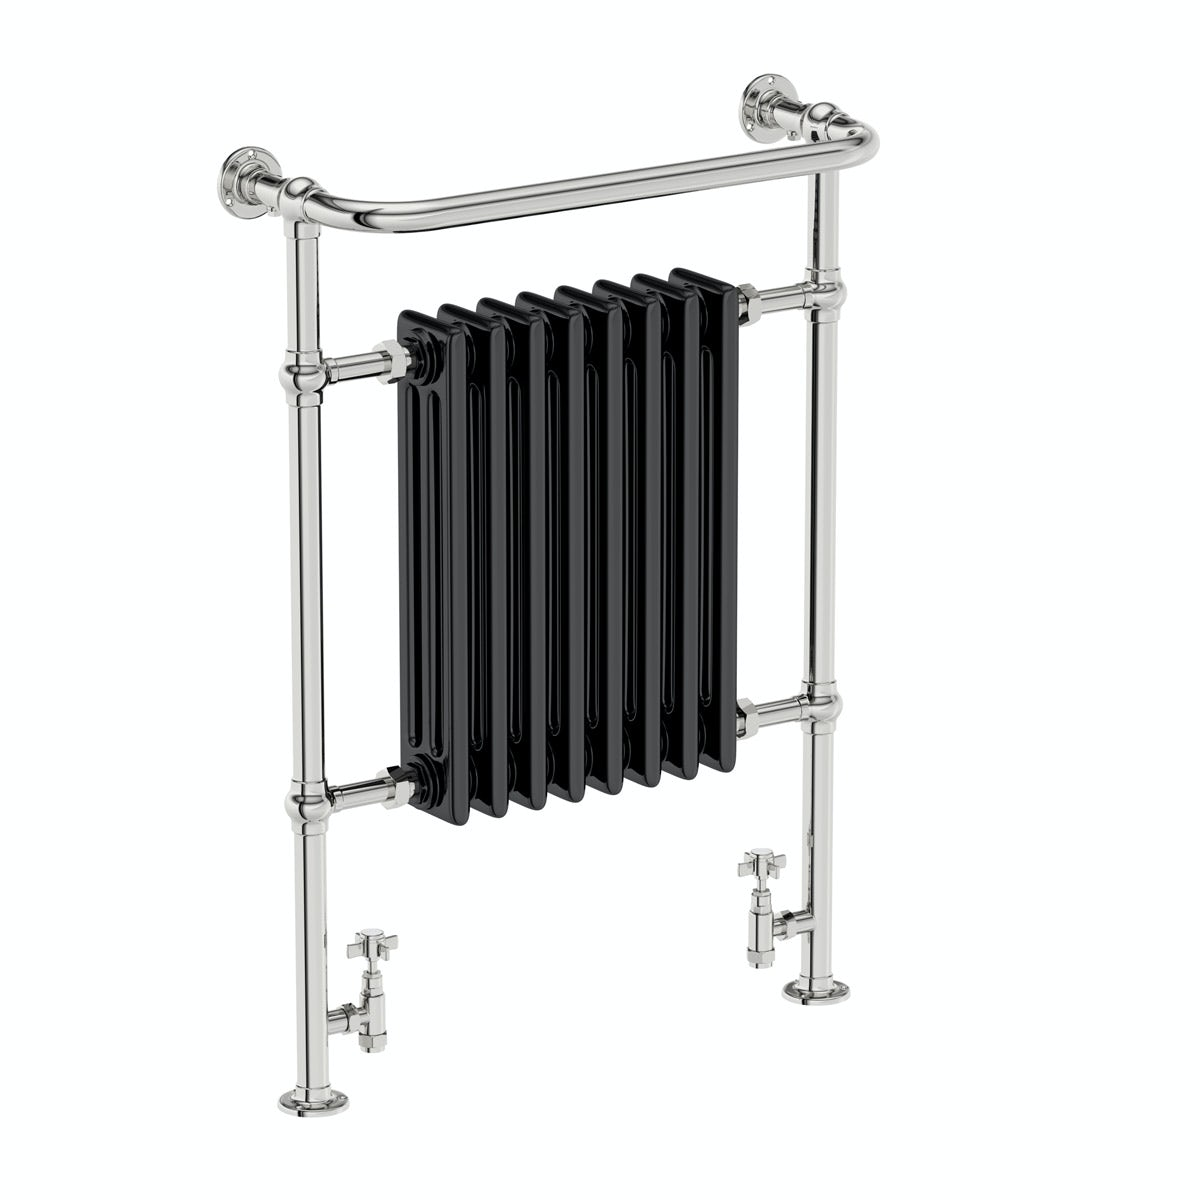 The Bath Co. Dulwich black traditional heated towel rail 952 x 659 offer pack